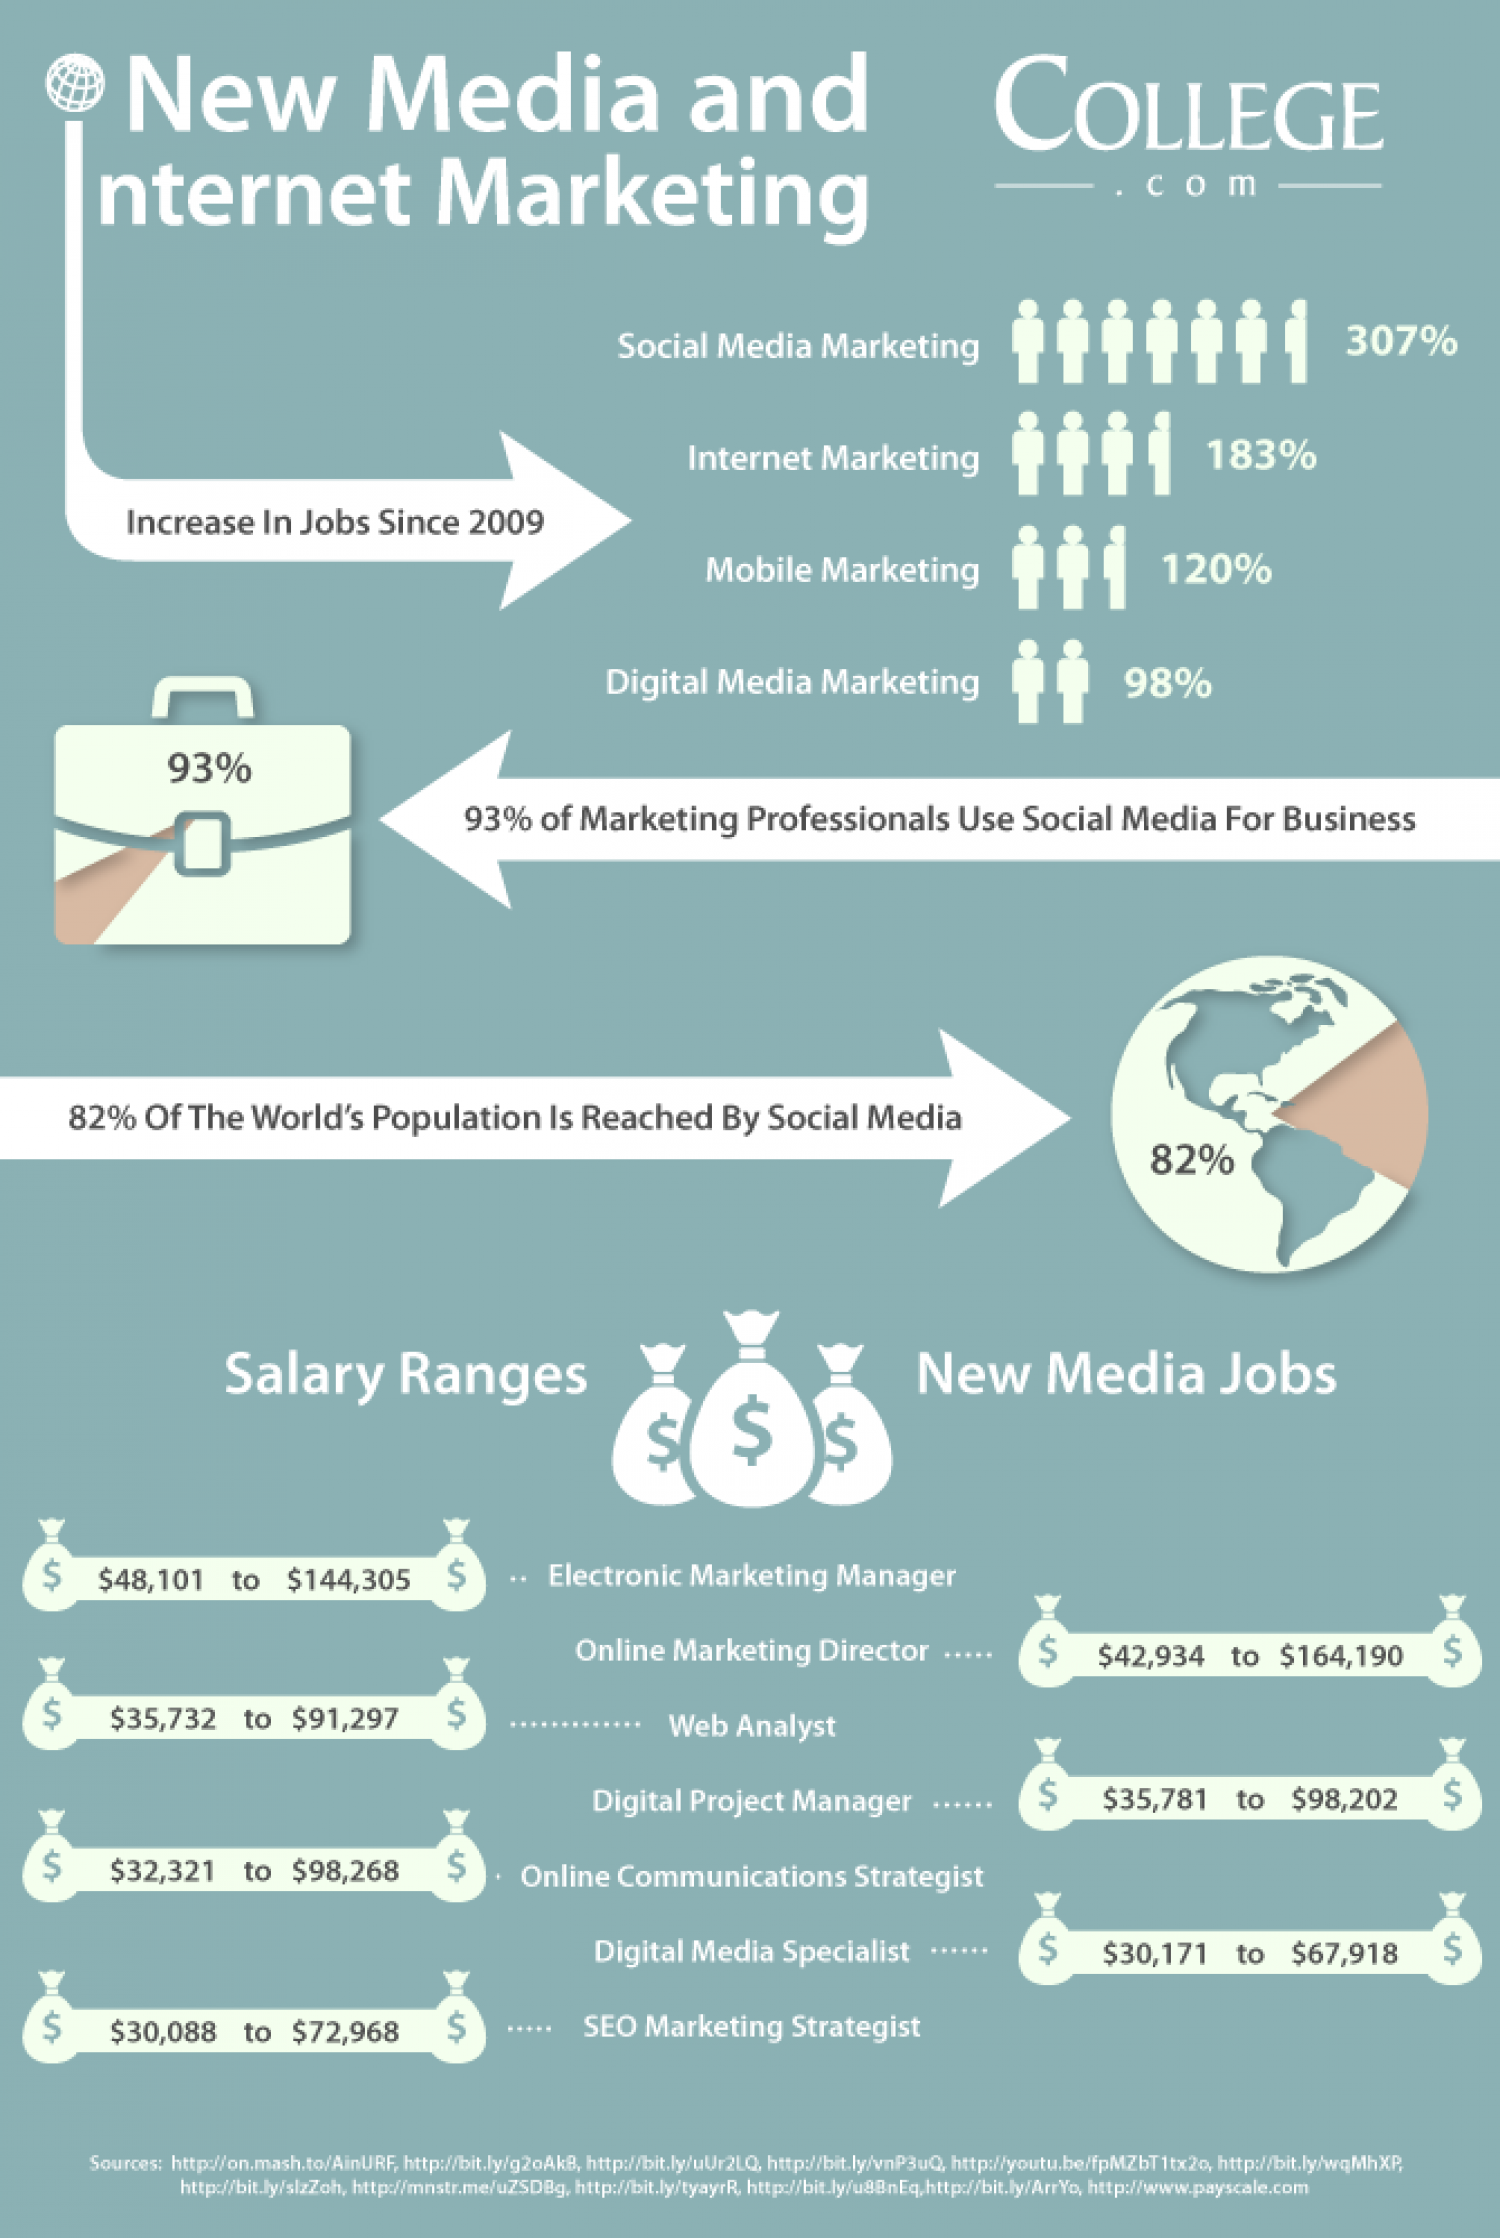 Marketing Jobs in New Media Infographic